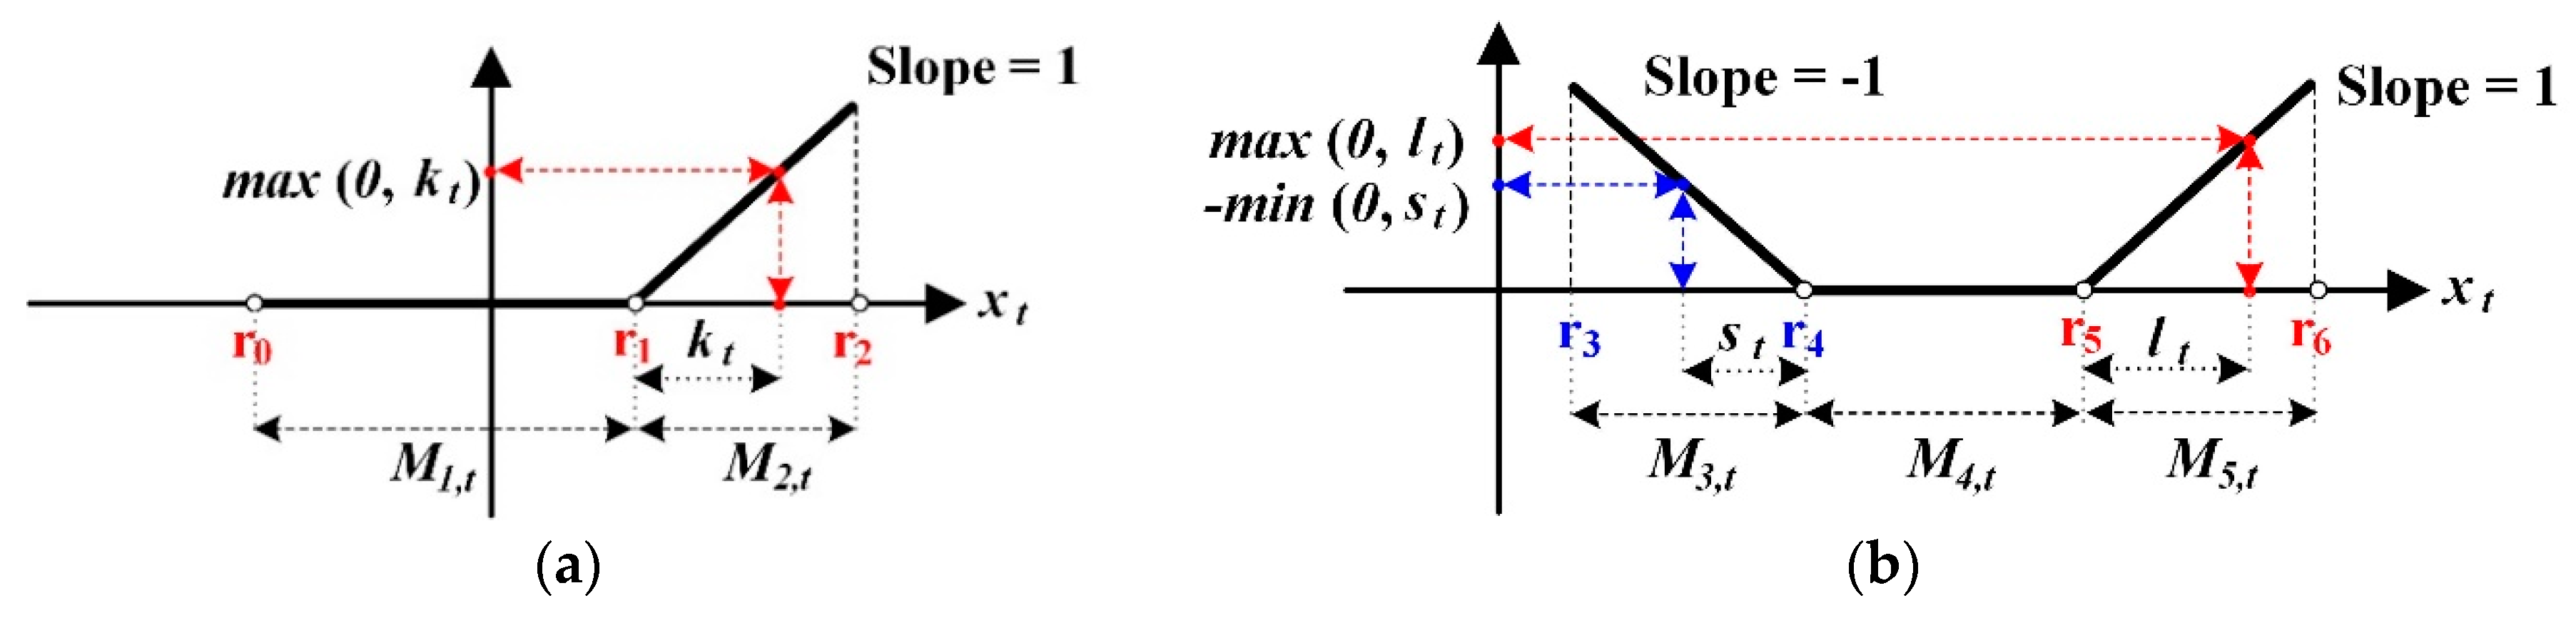 Energies | Free Full-Text | Implementation of Optimal Two